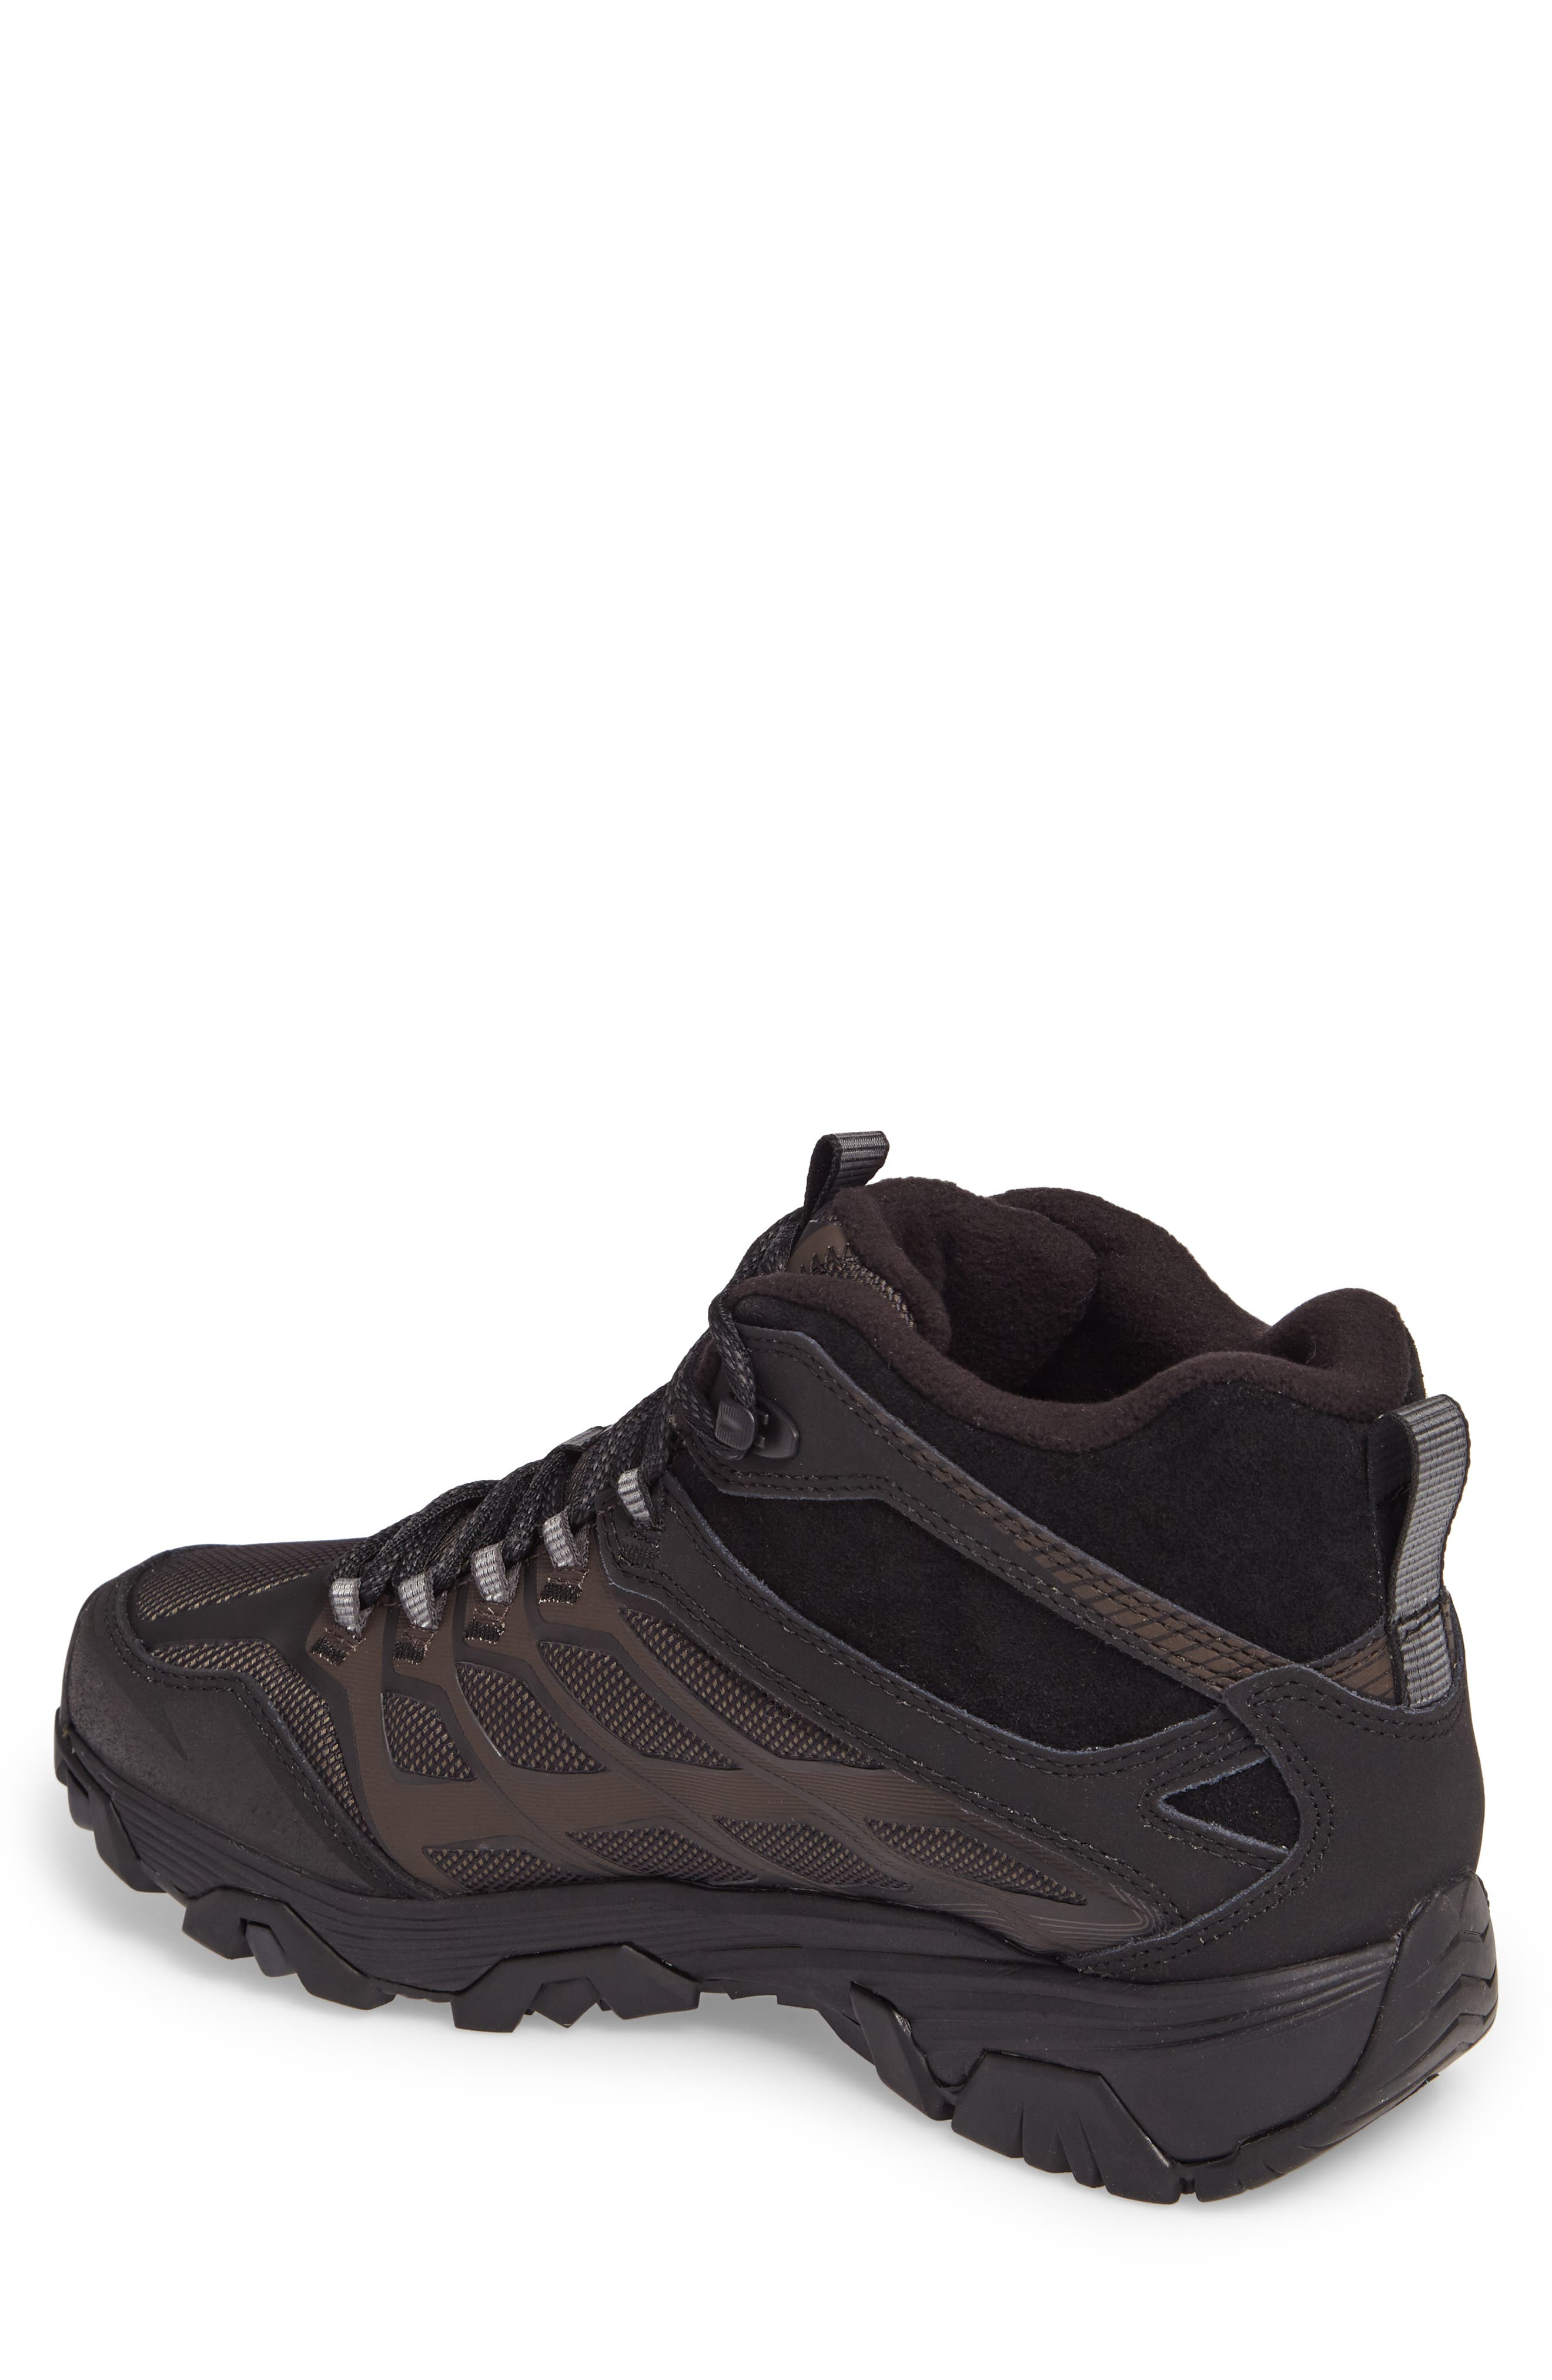 Moab FST Ice Thermo Waterproof Hiking Shoe,                             Alternate thumbnail 2, color,                             Black Fabric